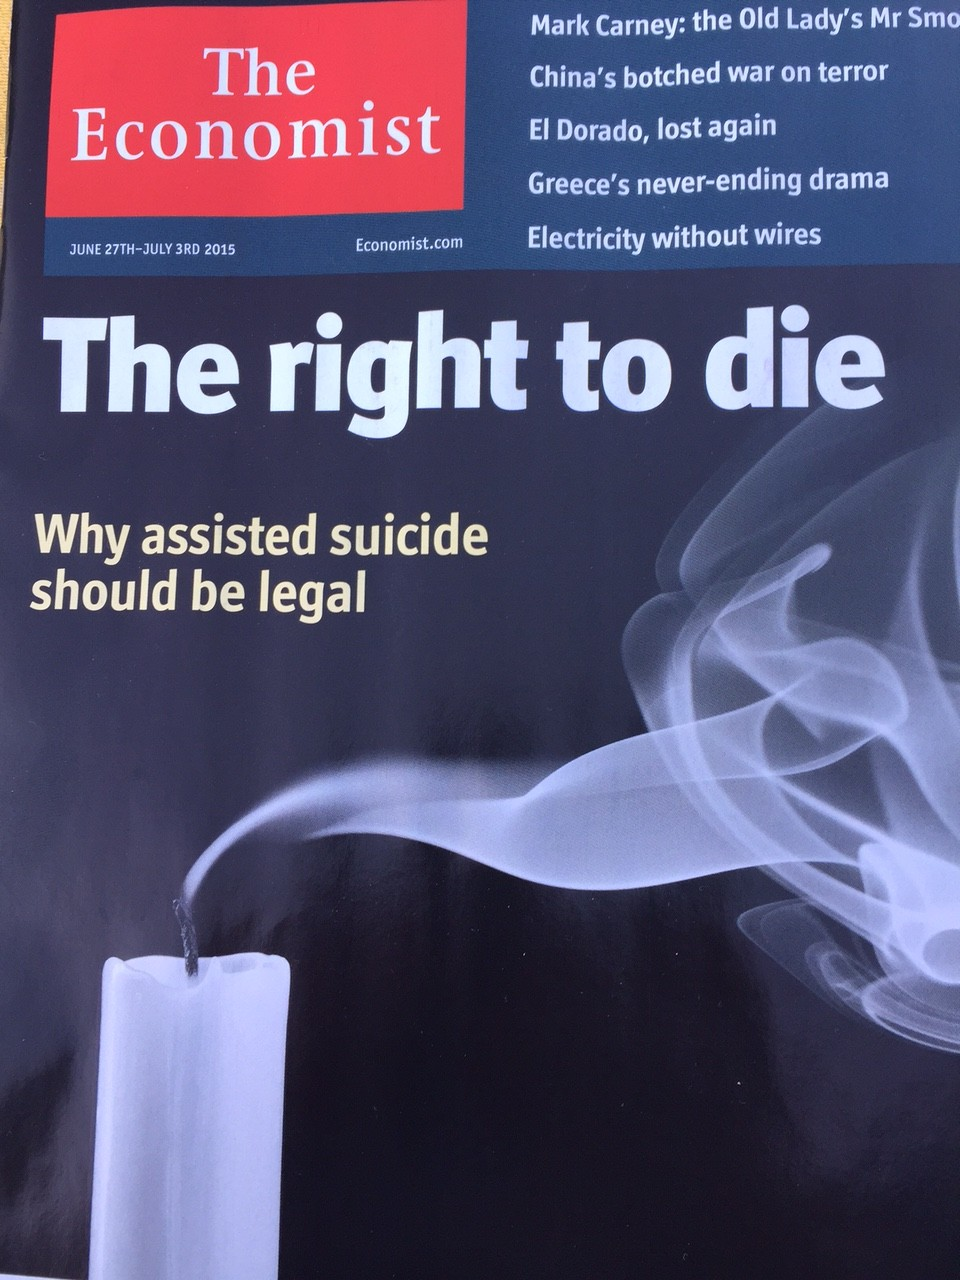 right to die essays Debate whether or not people have the right to die voice your opinion and learn more about each side of the debate.